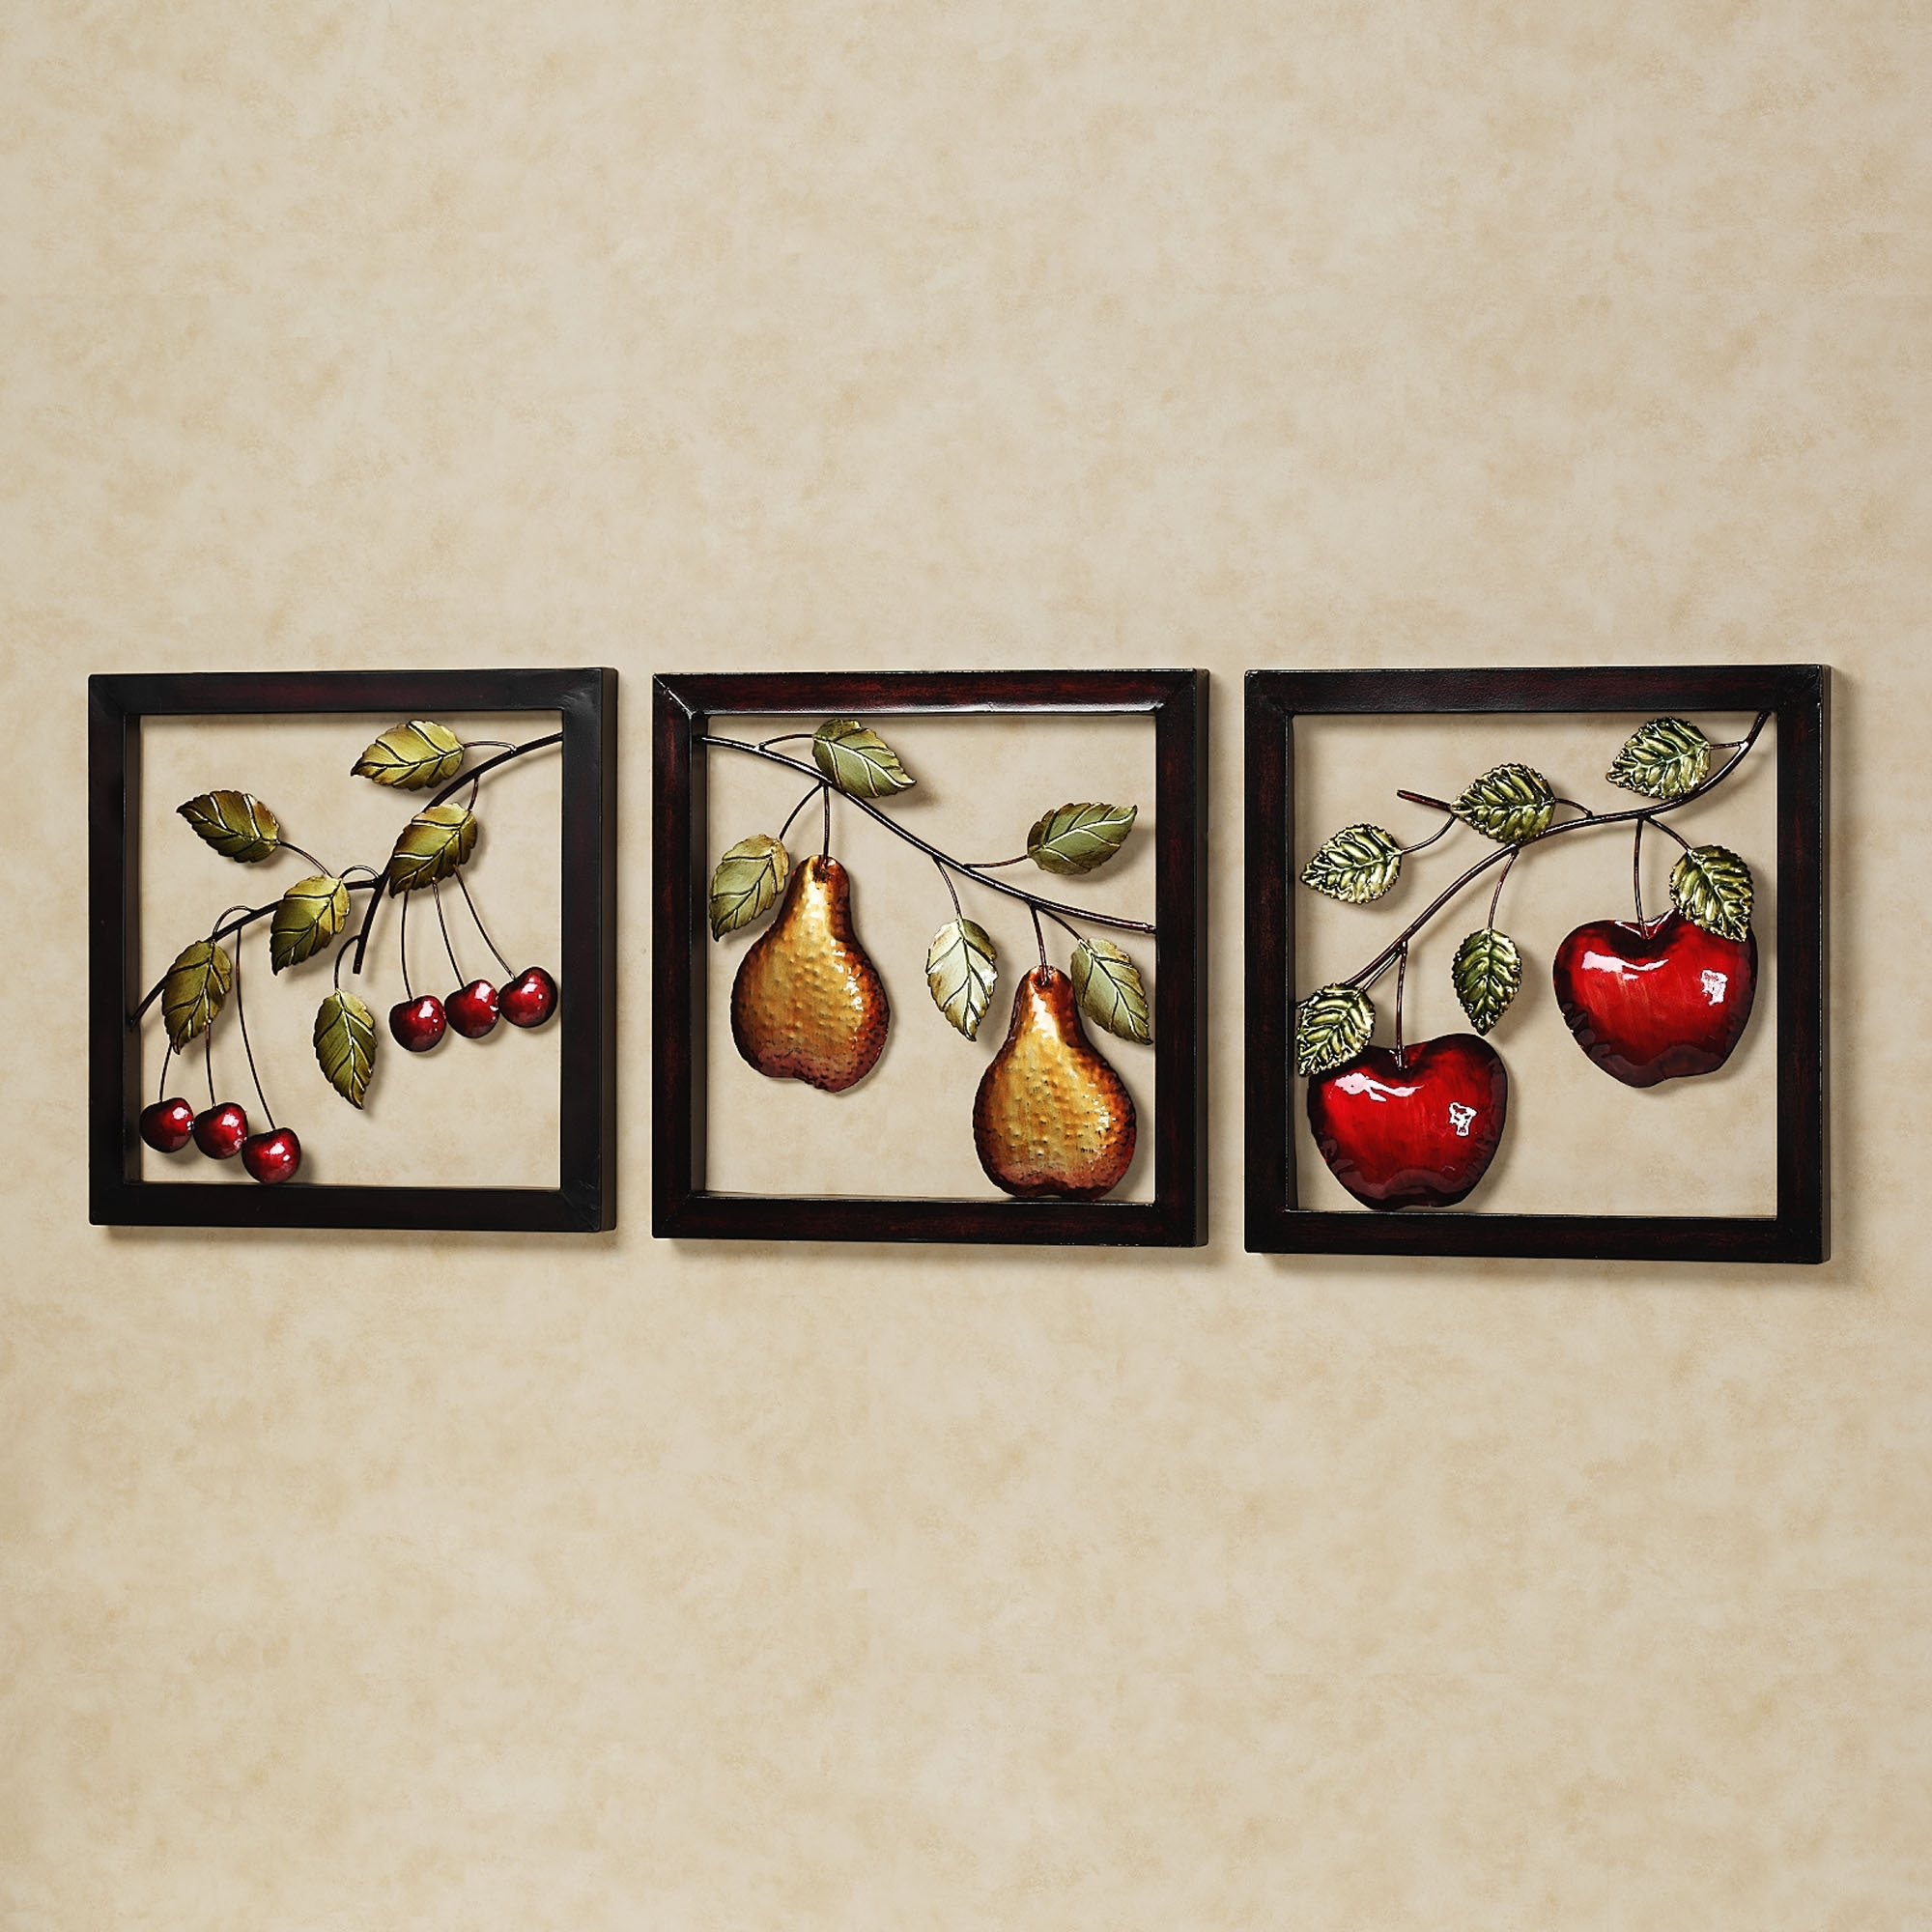 Wall Art For Kitchen Regarding Well Known Beautiful Fruits Metal Wall Art Decor Kitchen With Black Frame Ideas (View 10 of 15)